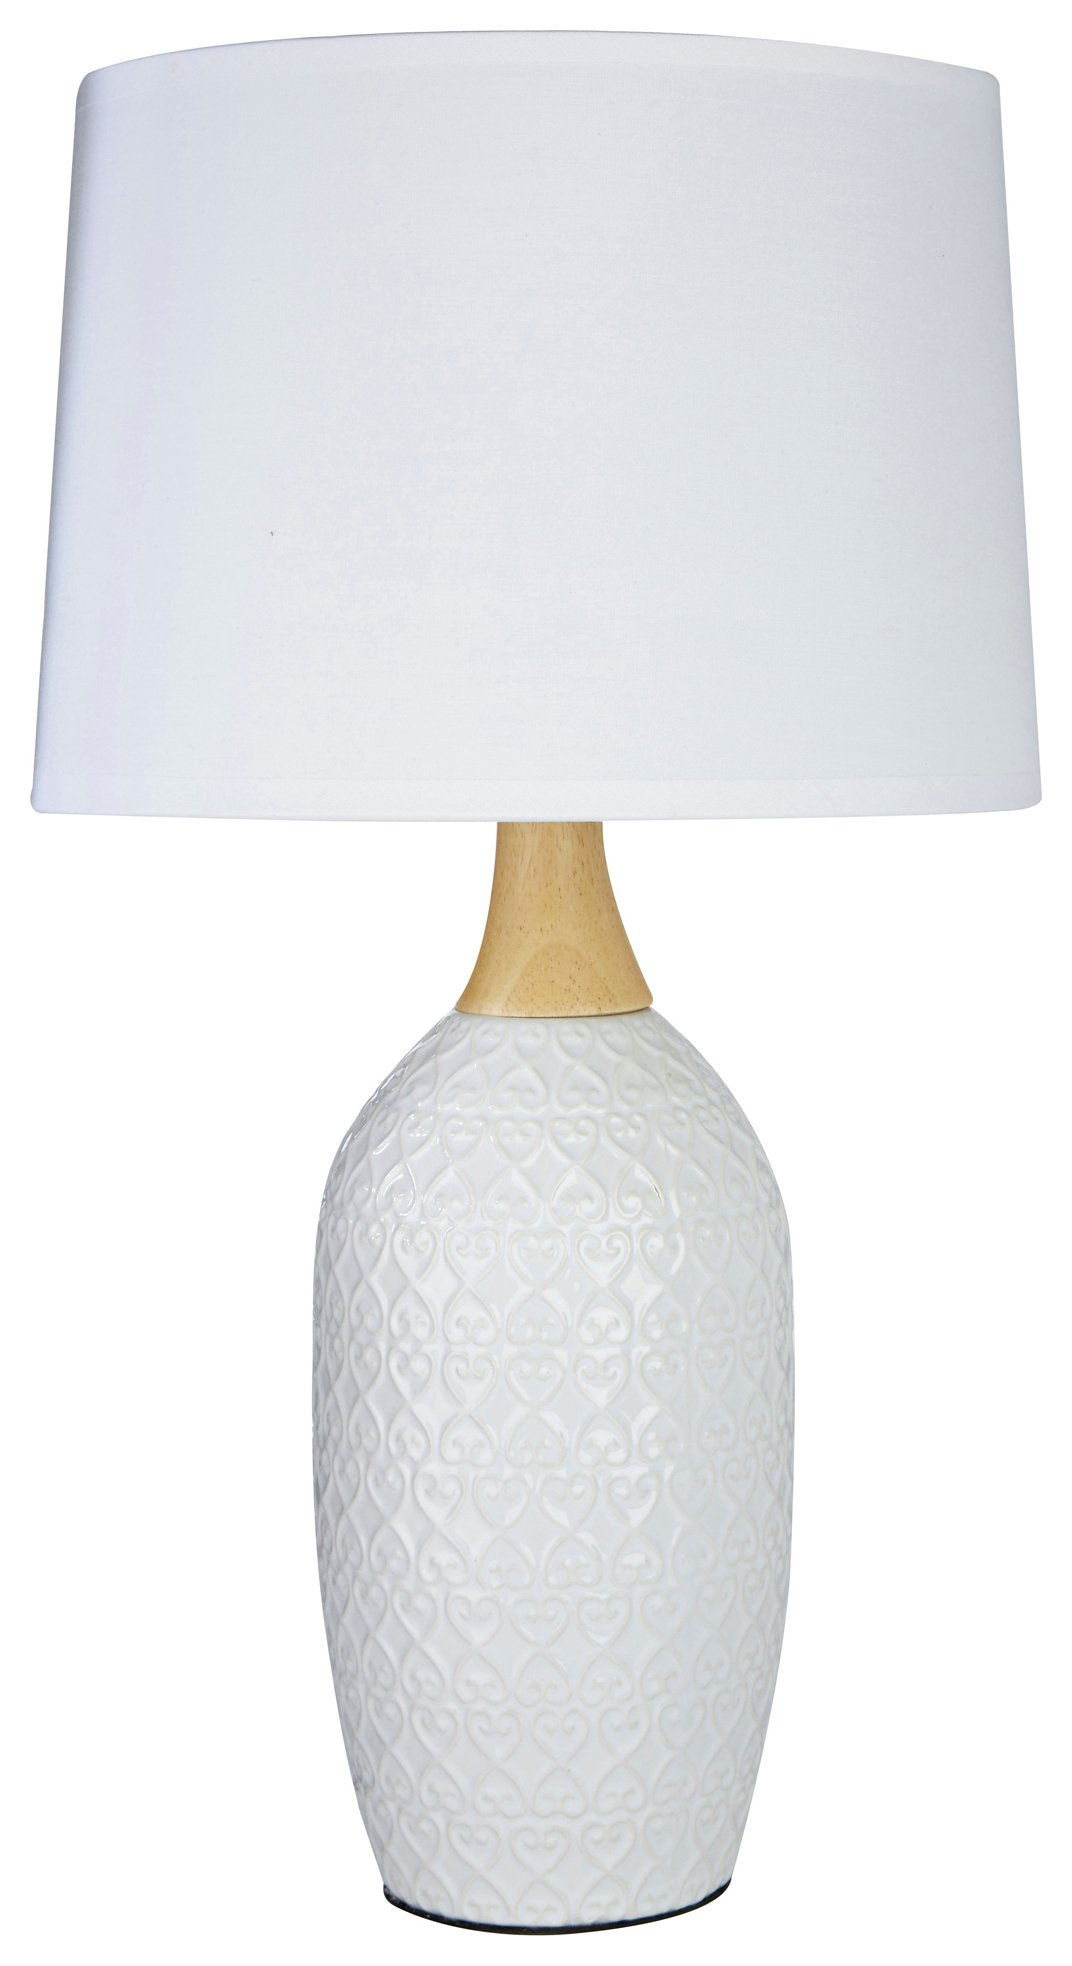 Image of Willow - Ceramic - Table Lamp - White